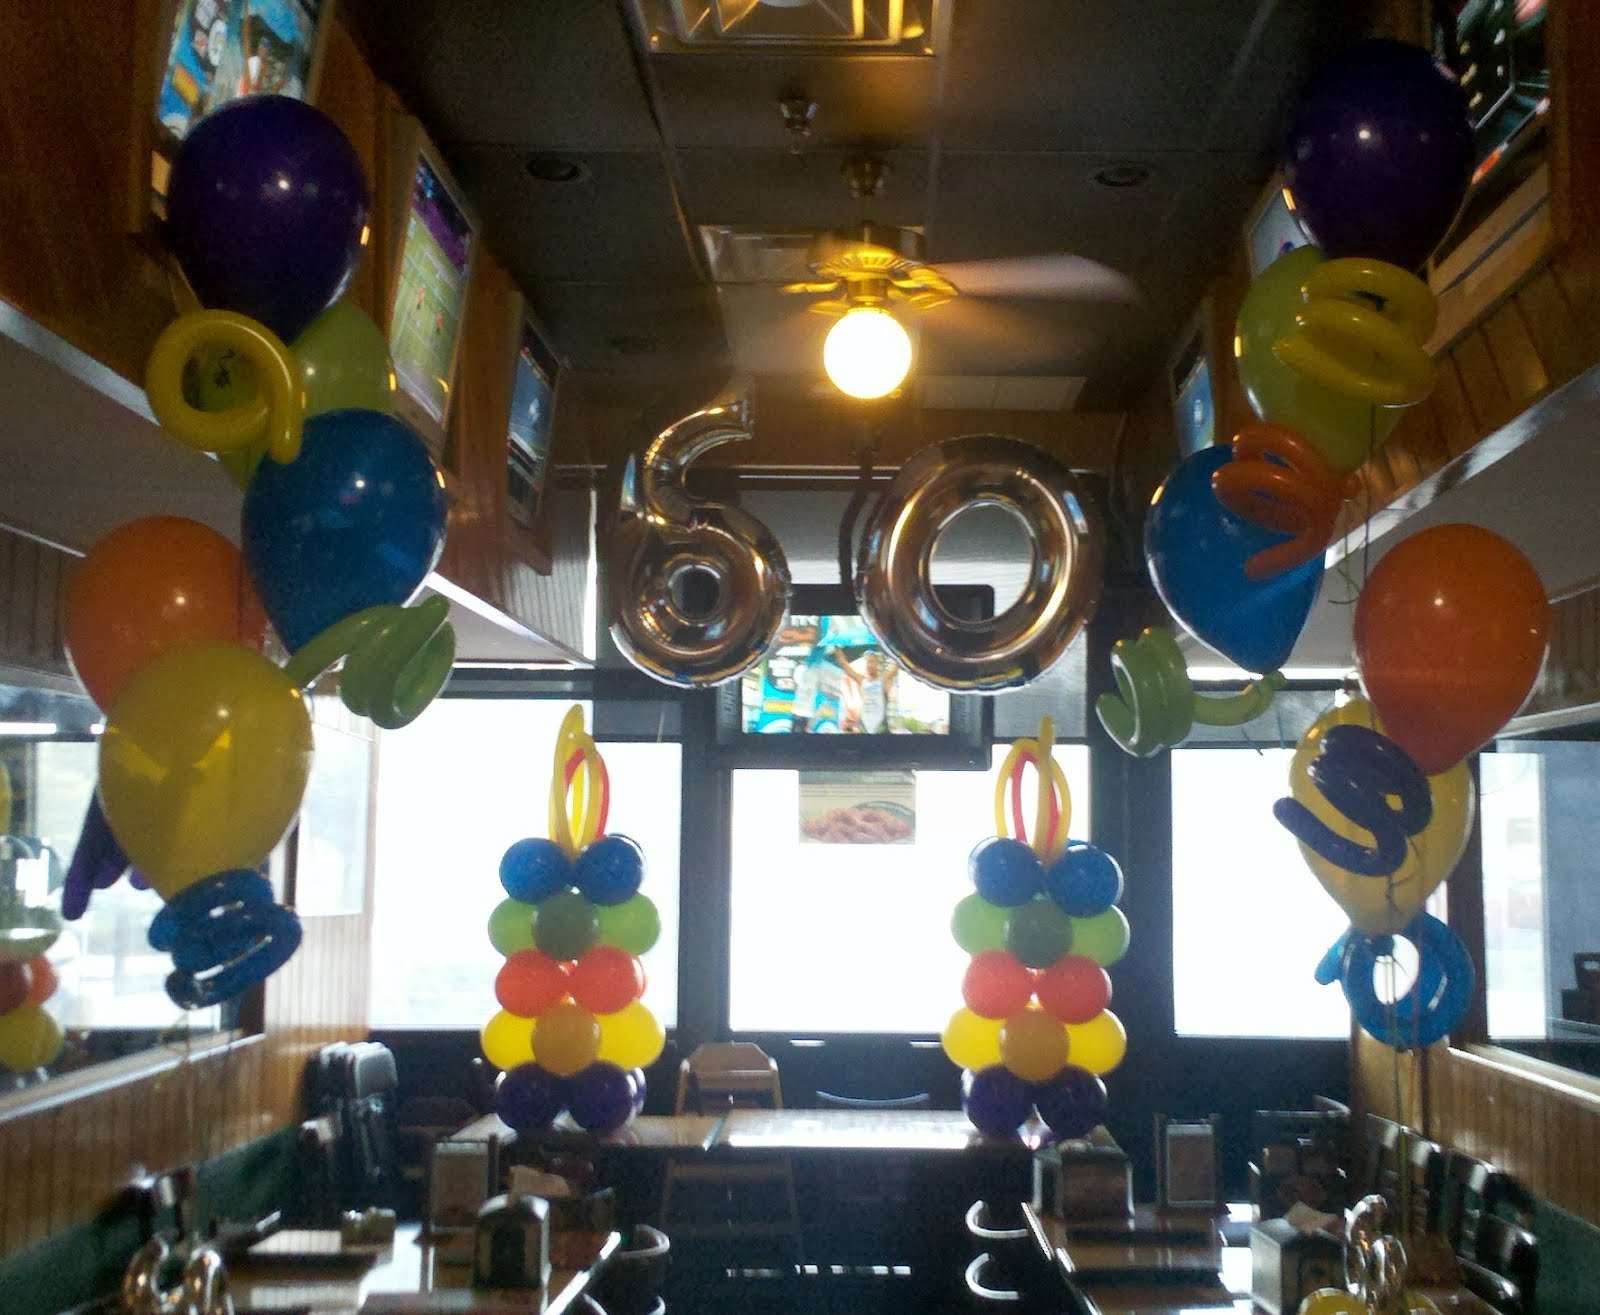 Party People Event Decorating Company: 60th Surprise Birthday for Decoration Ideas For Birthday Surprise  186ref